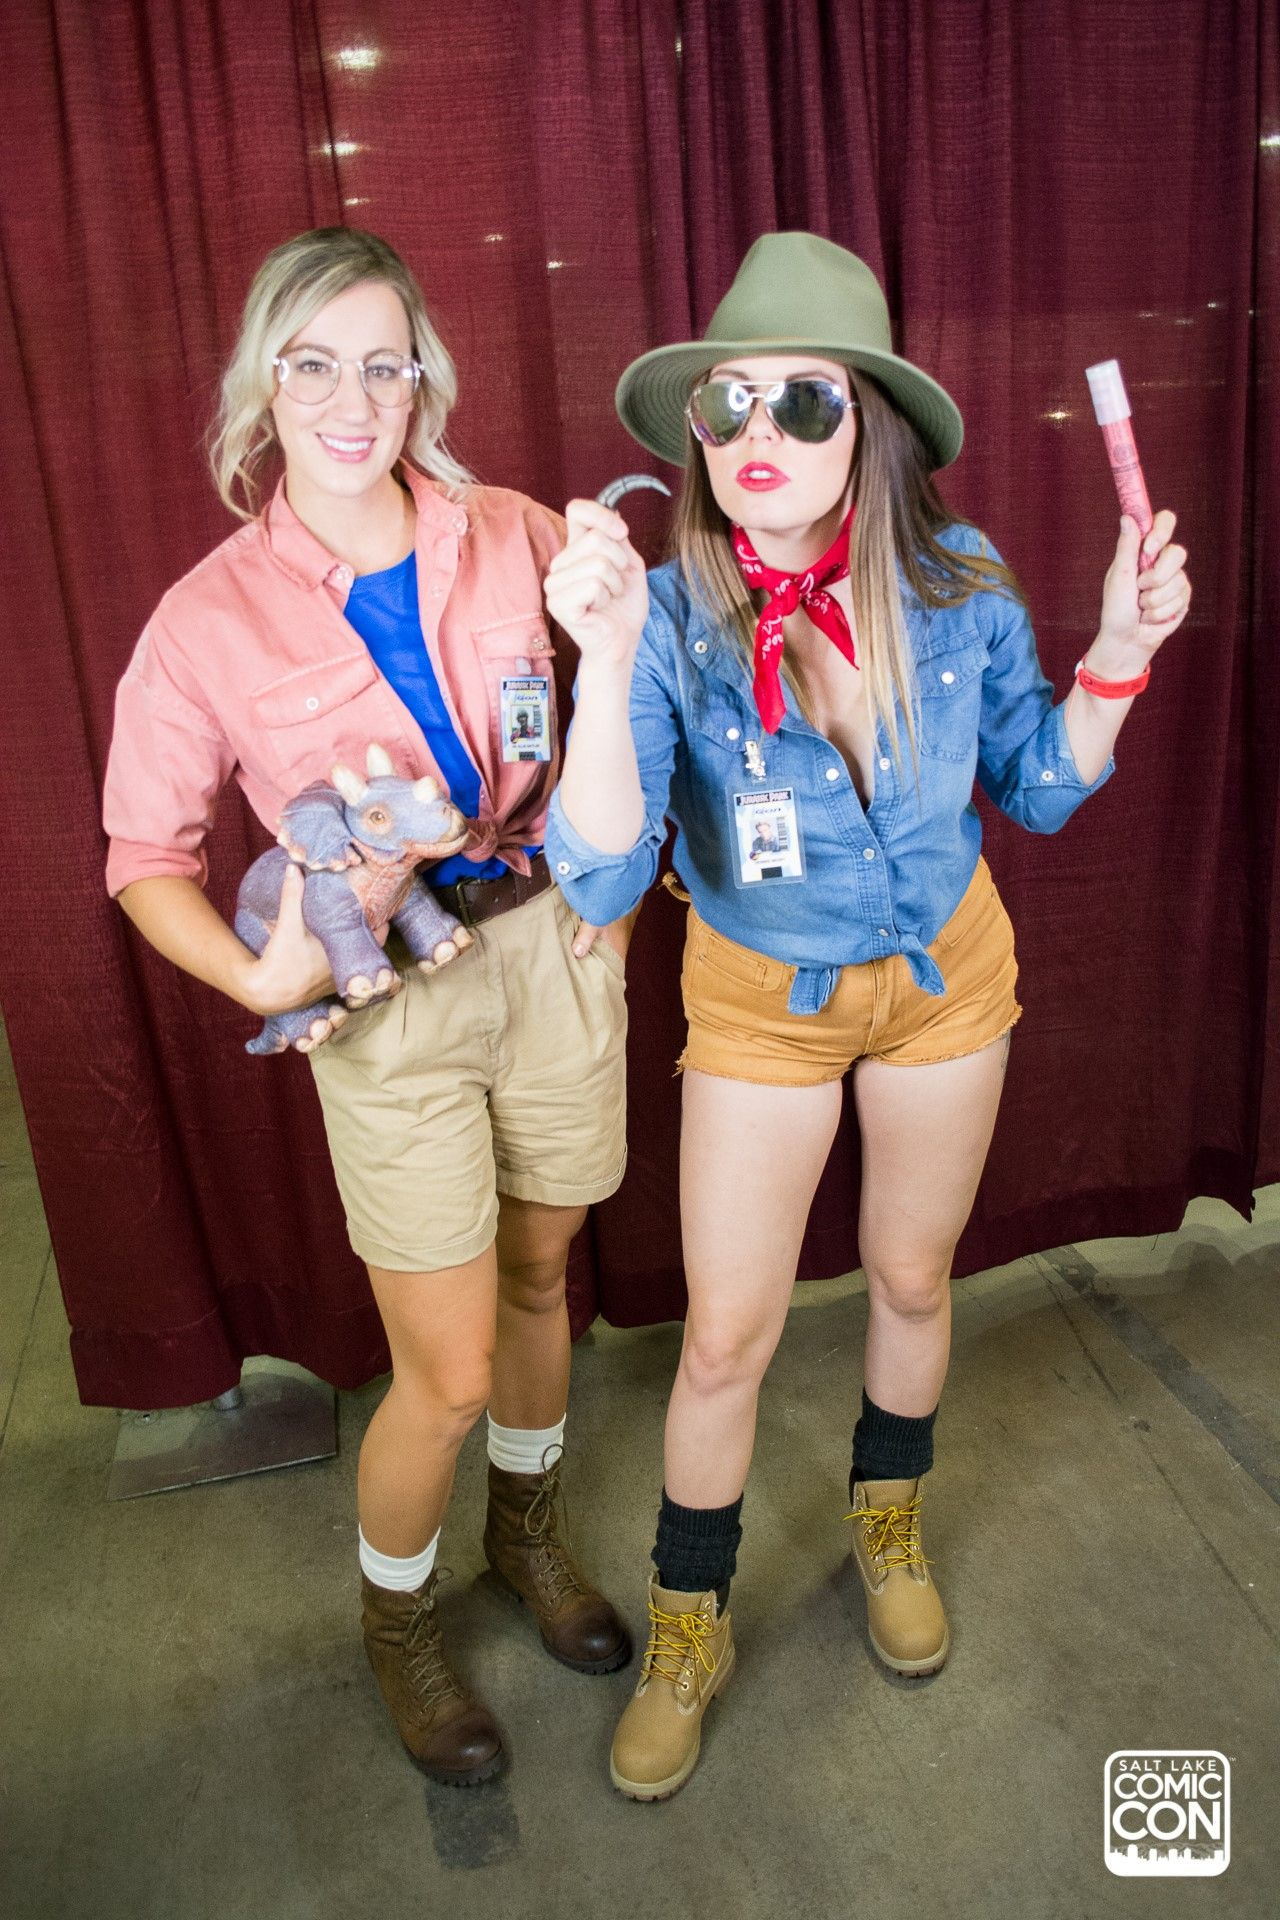 Jurassic Park Costumes Cosplay At Salt Lake Comic Con 2016